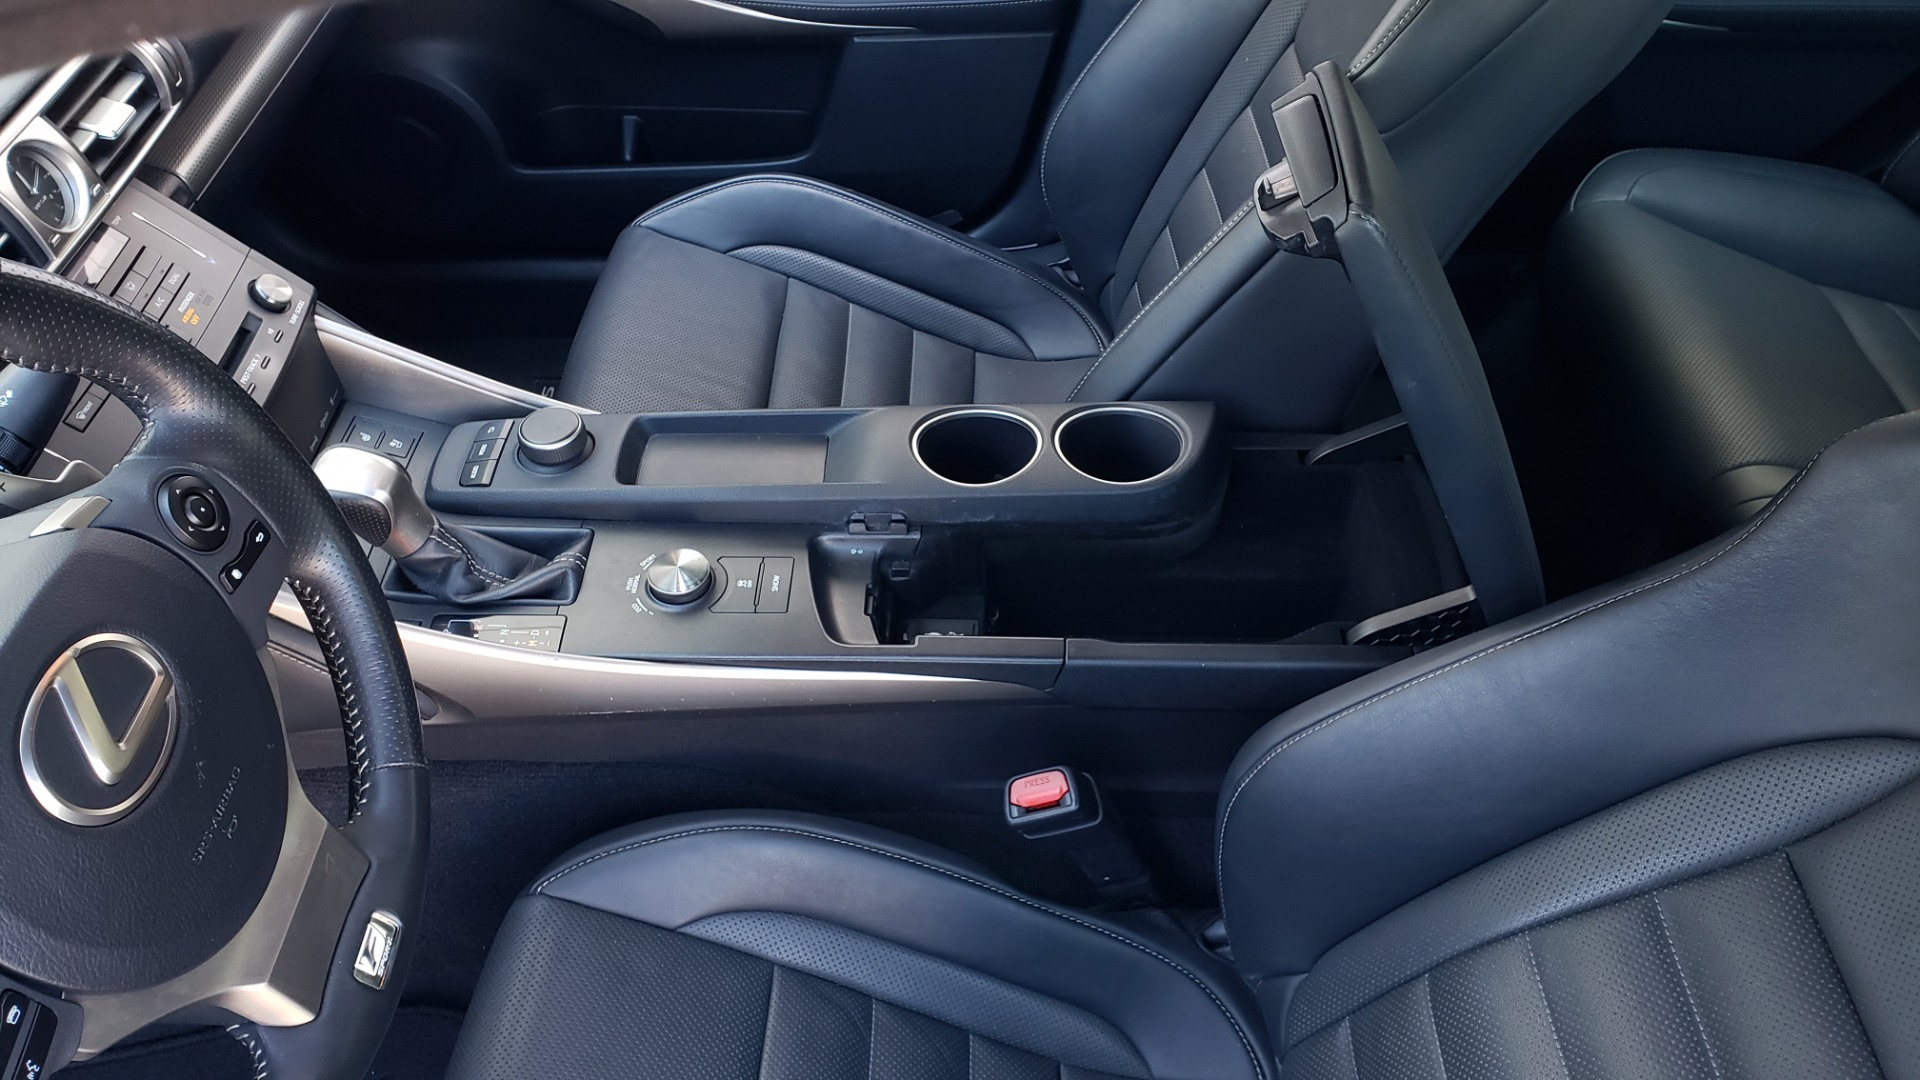 Used 2015 Lexus IS 250 F-SPORT / BSM / SUNROOF / VENT SEATS / REARVIEW for sale Sold at Formula Imports in Charlotte NC 28227 55